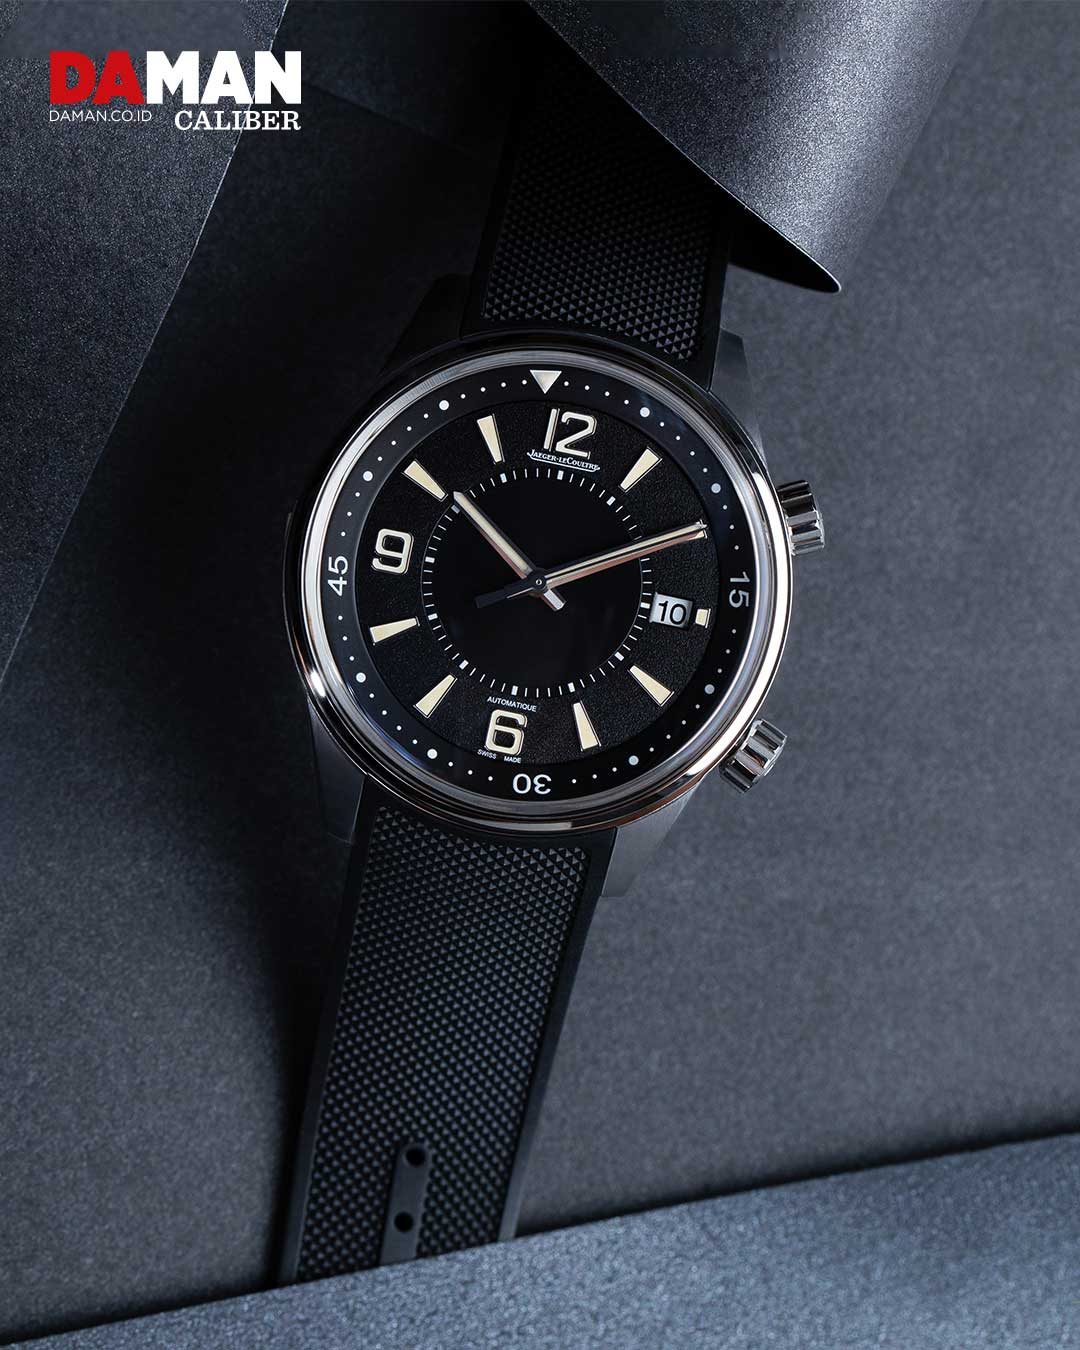 Jaeger-LeCoultre polaris date in stainless steel with black rubber strap